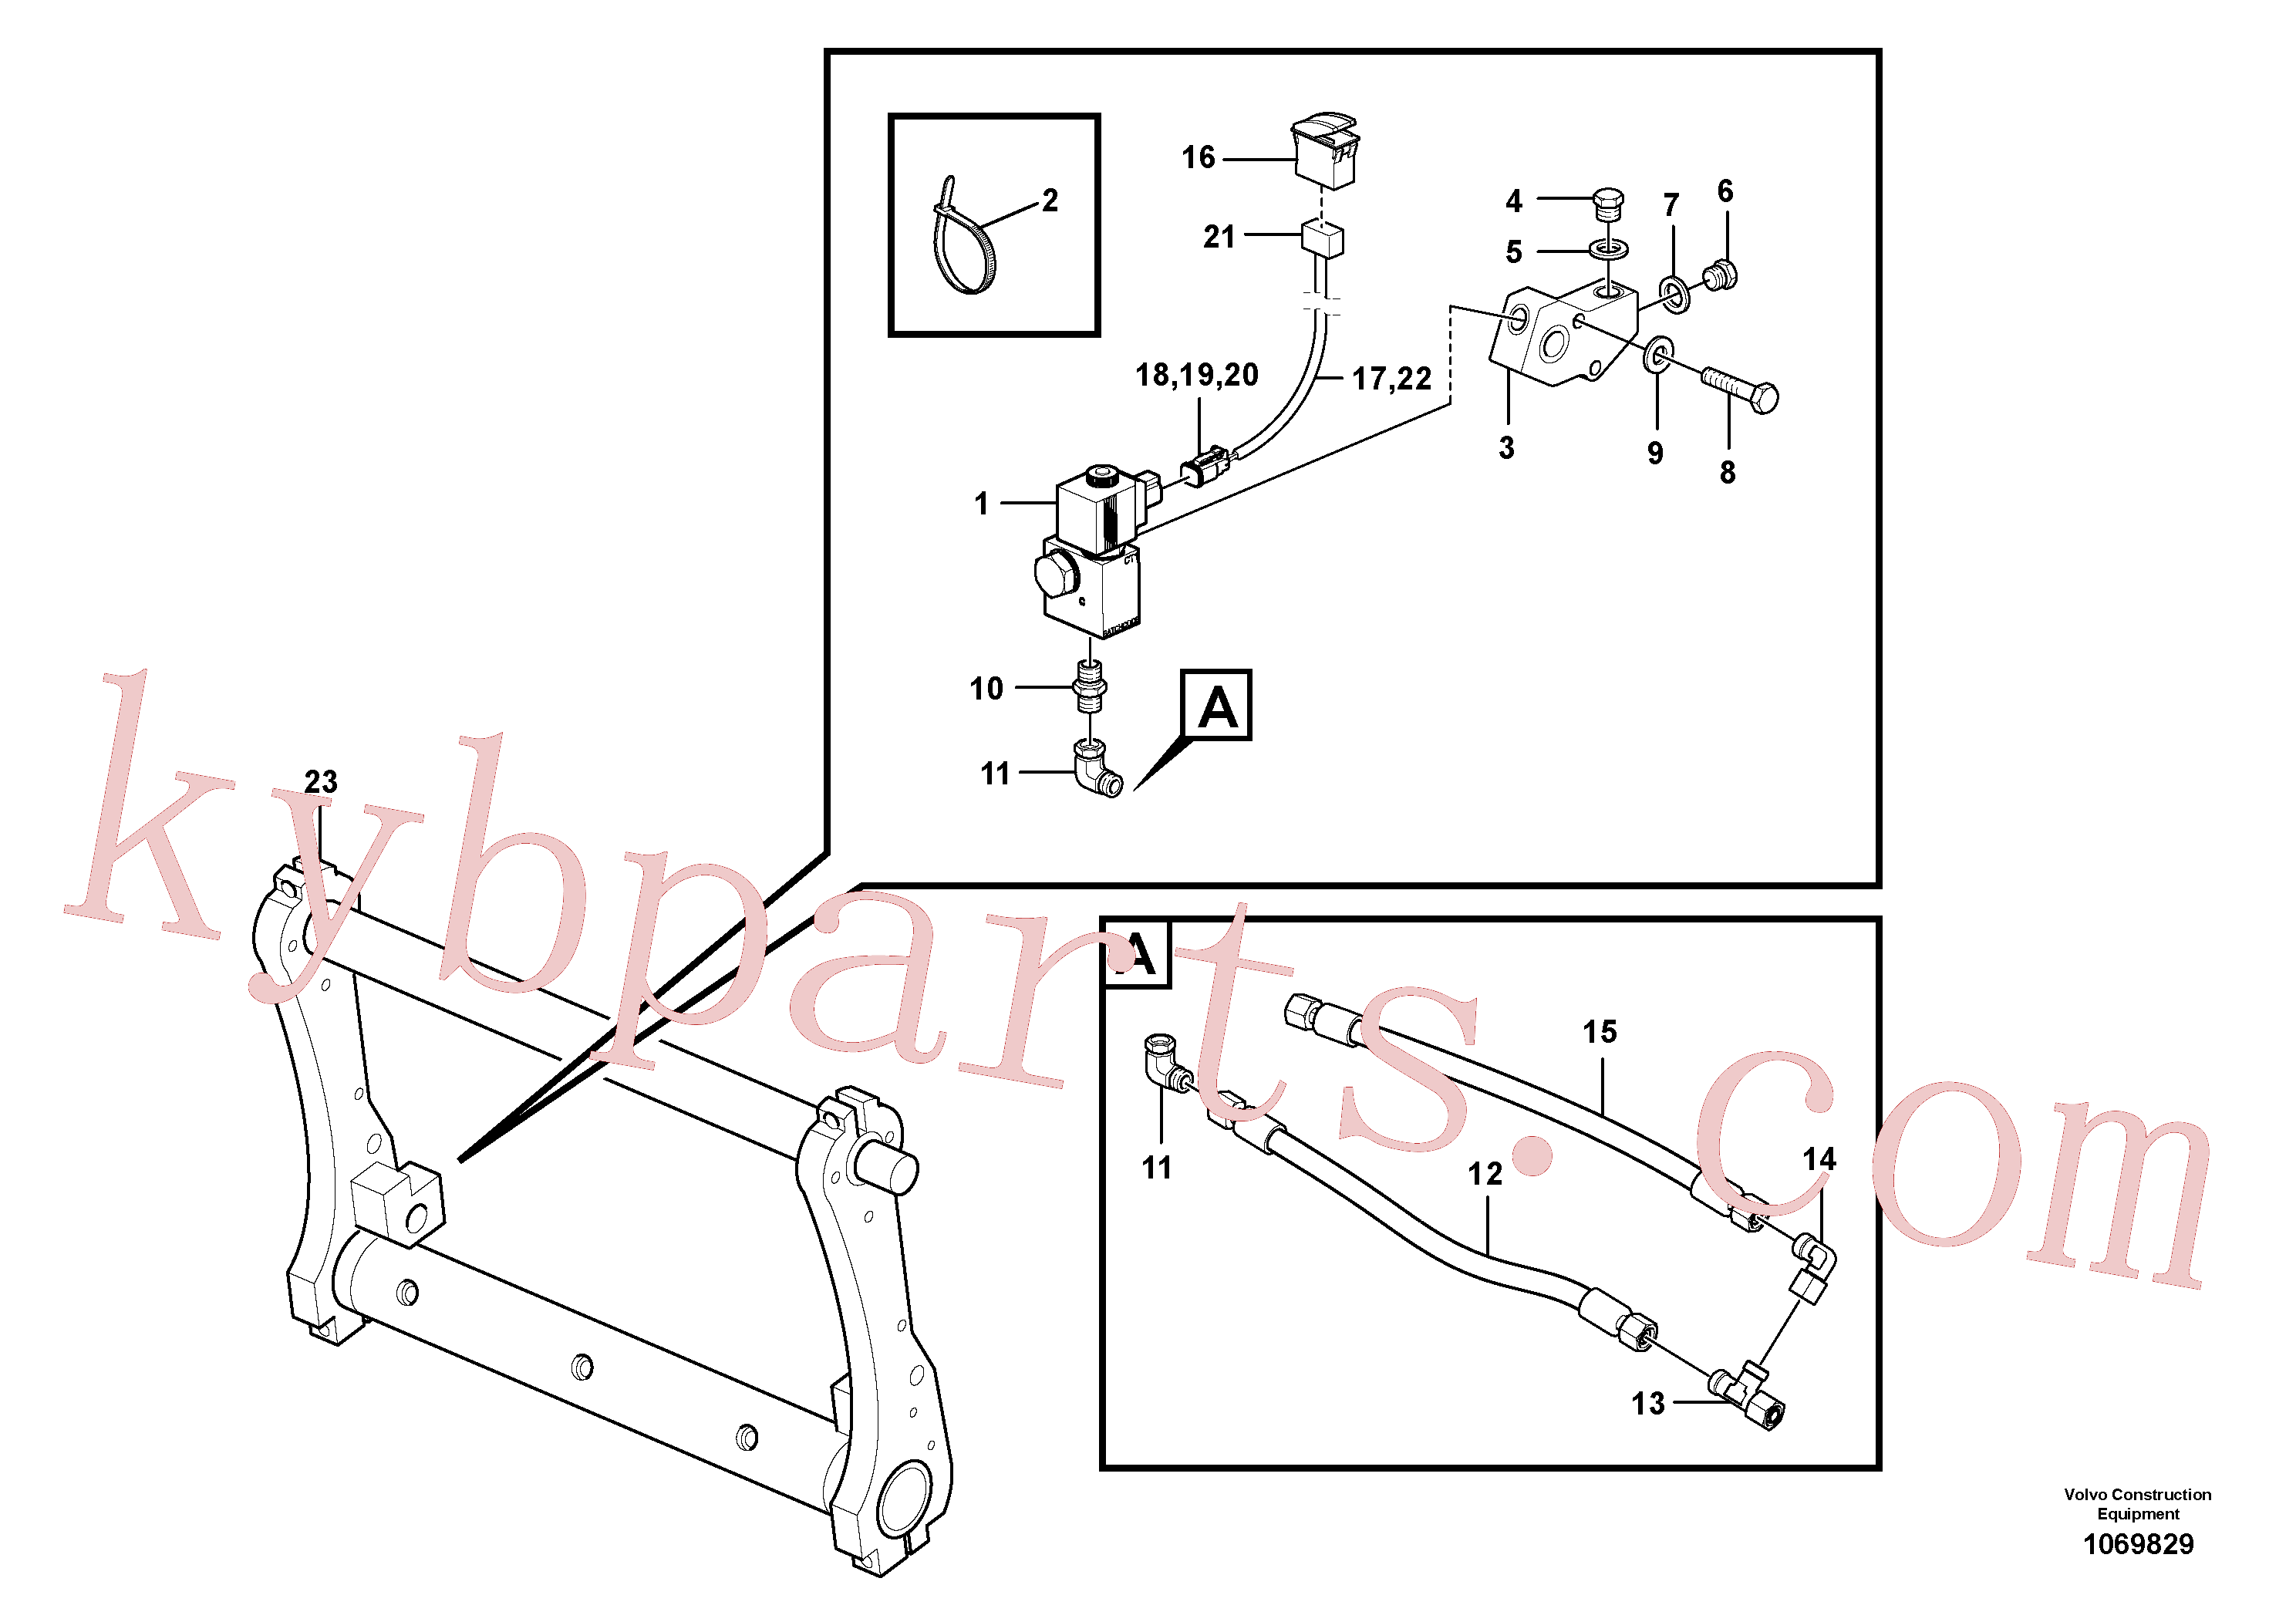 VOE874956 for Volvo Locking device(1069829 assembly)